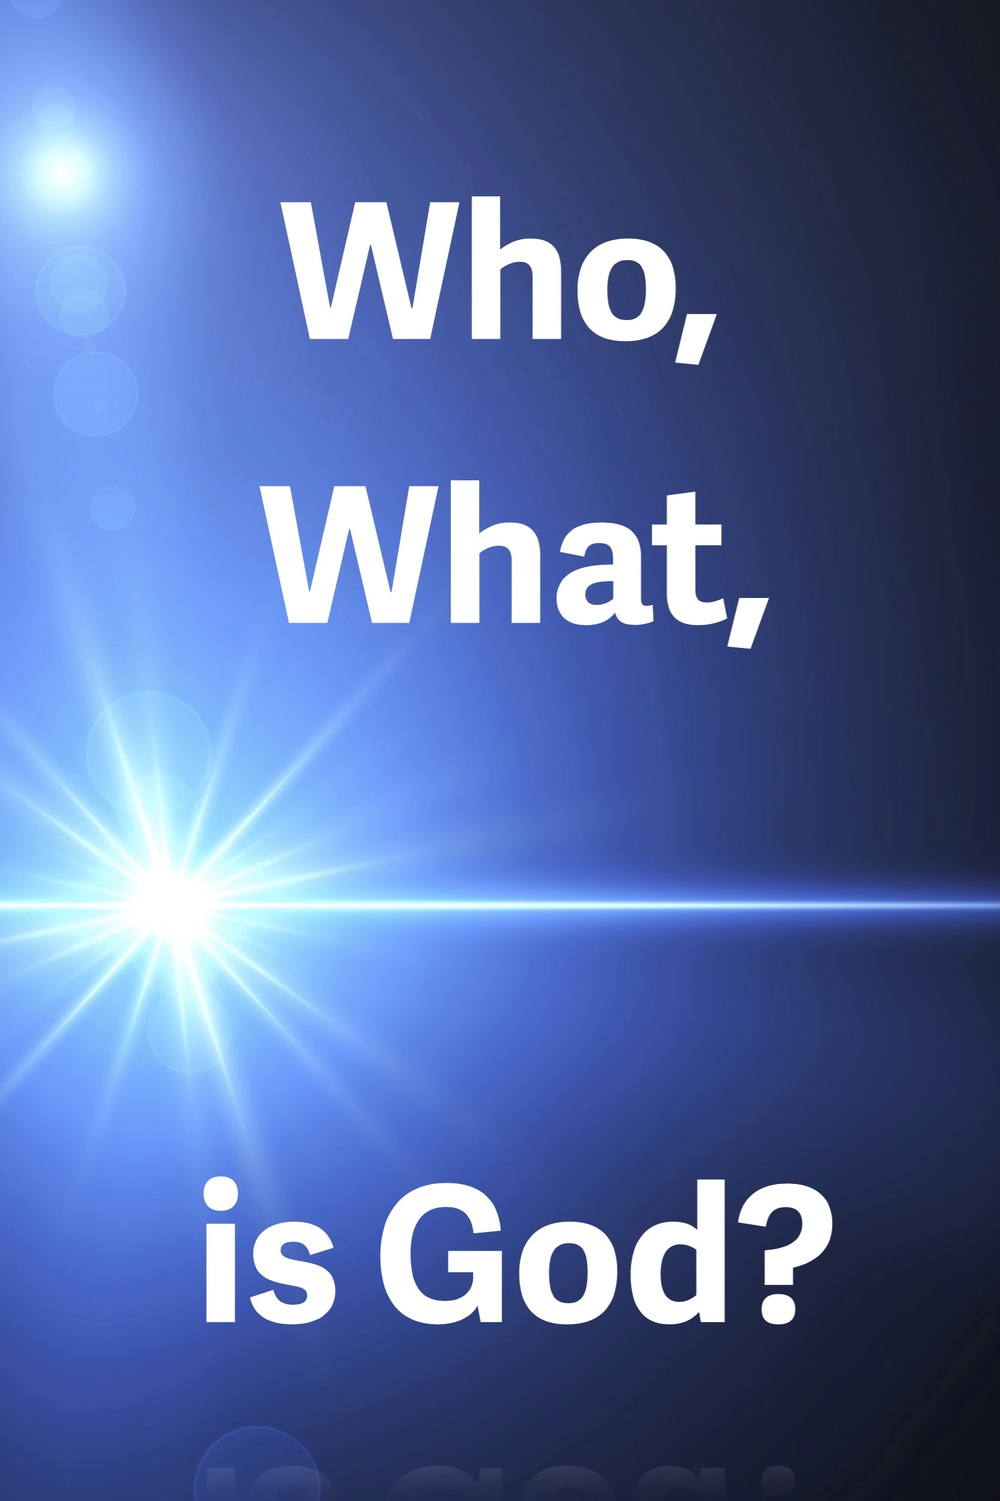 Gods Answers To Lifes Difficult Questions Pdf